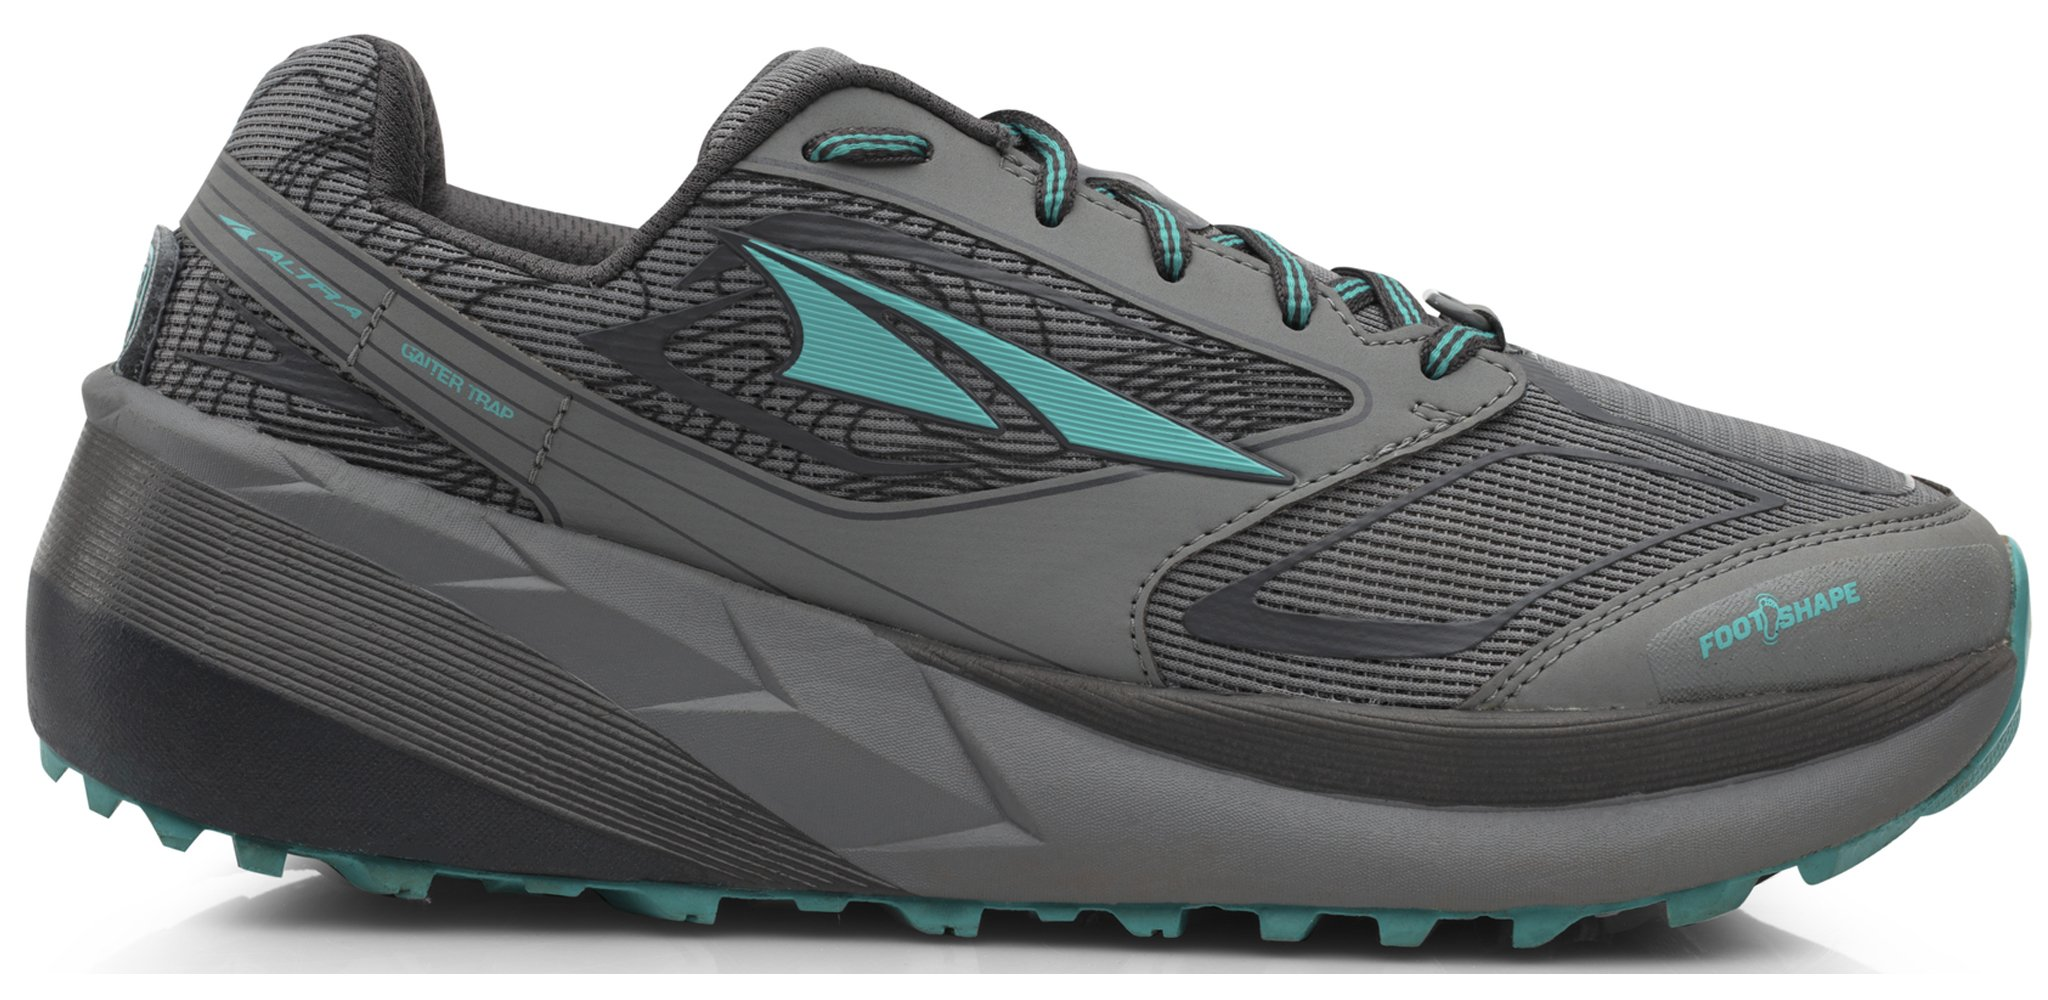 Altra AFW1859F Women's Olympus 3 Trail Running Shoe, Gray/Teal - 12 B(M) US by Altra (Image #1)